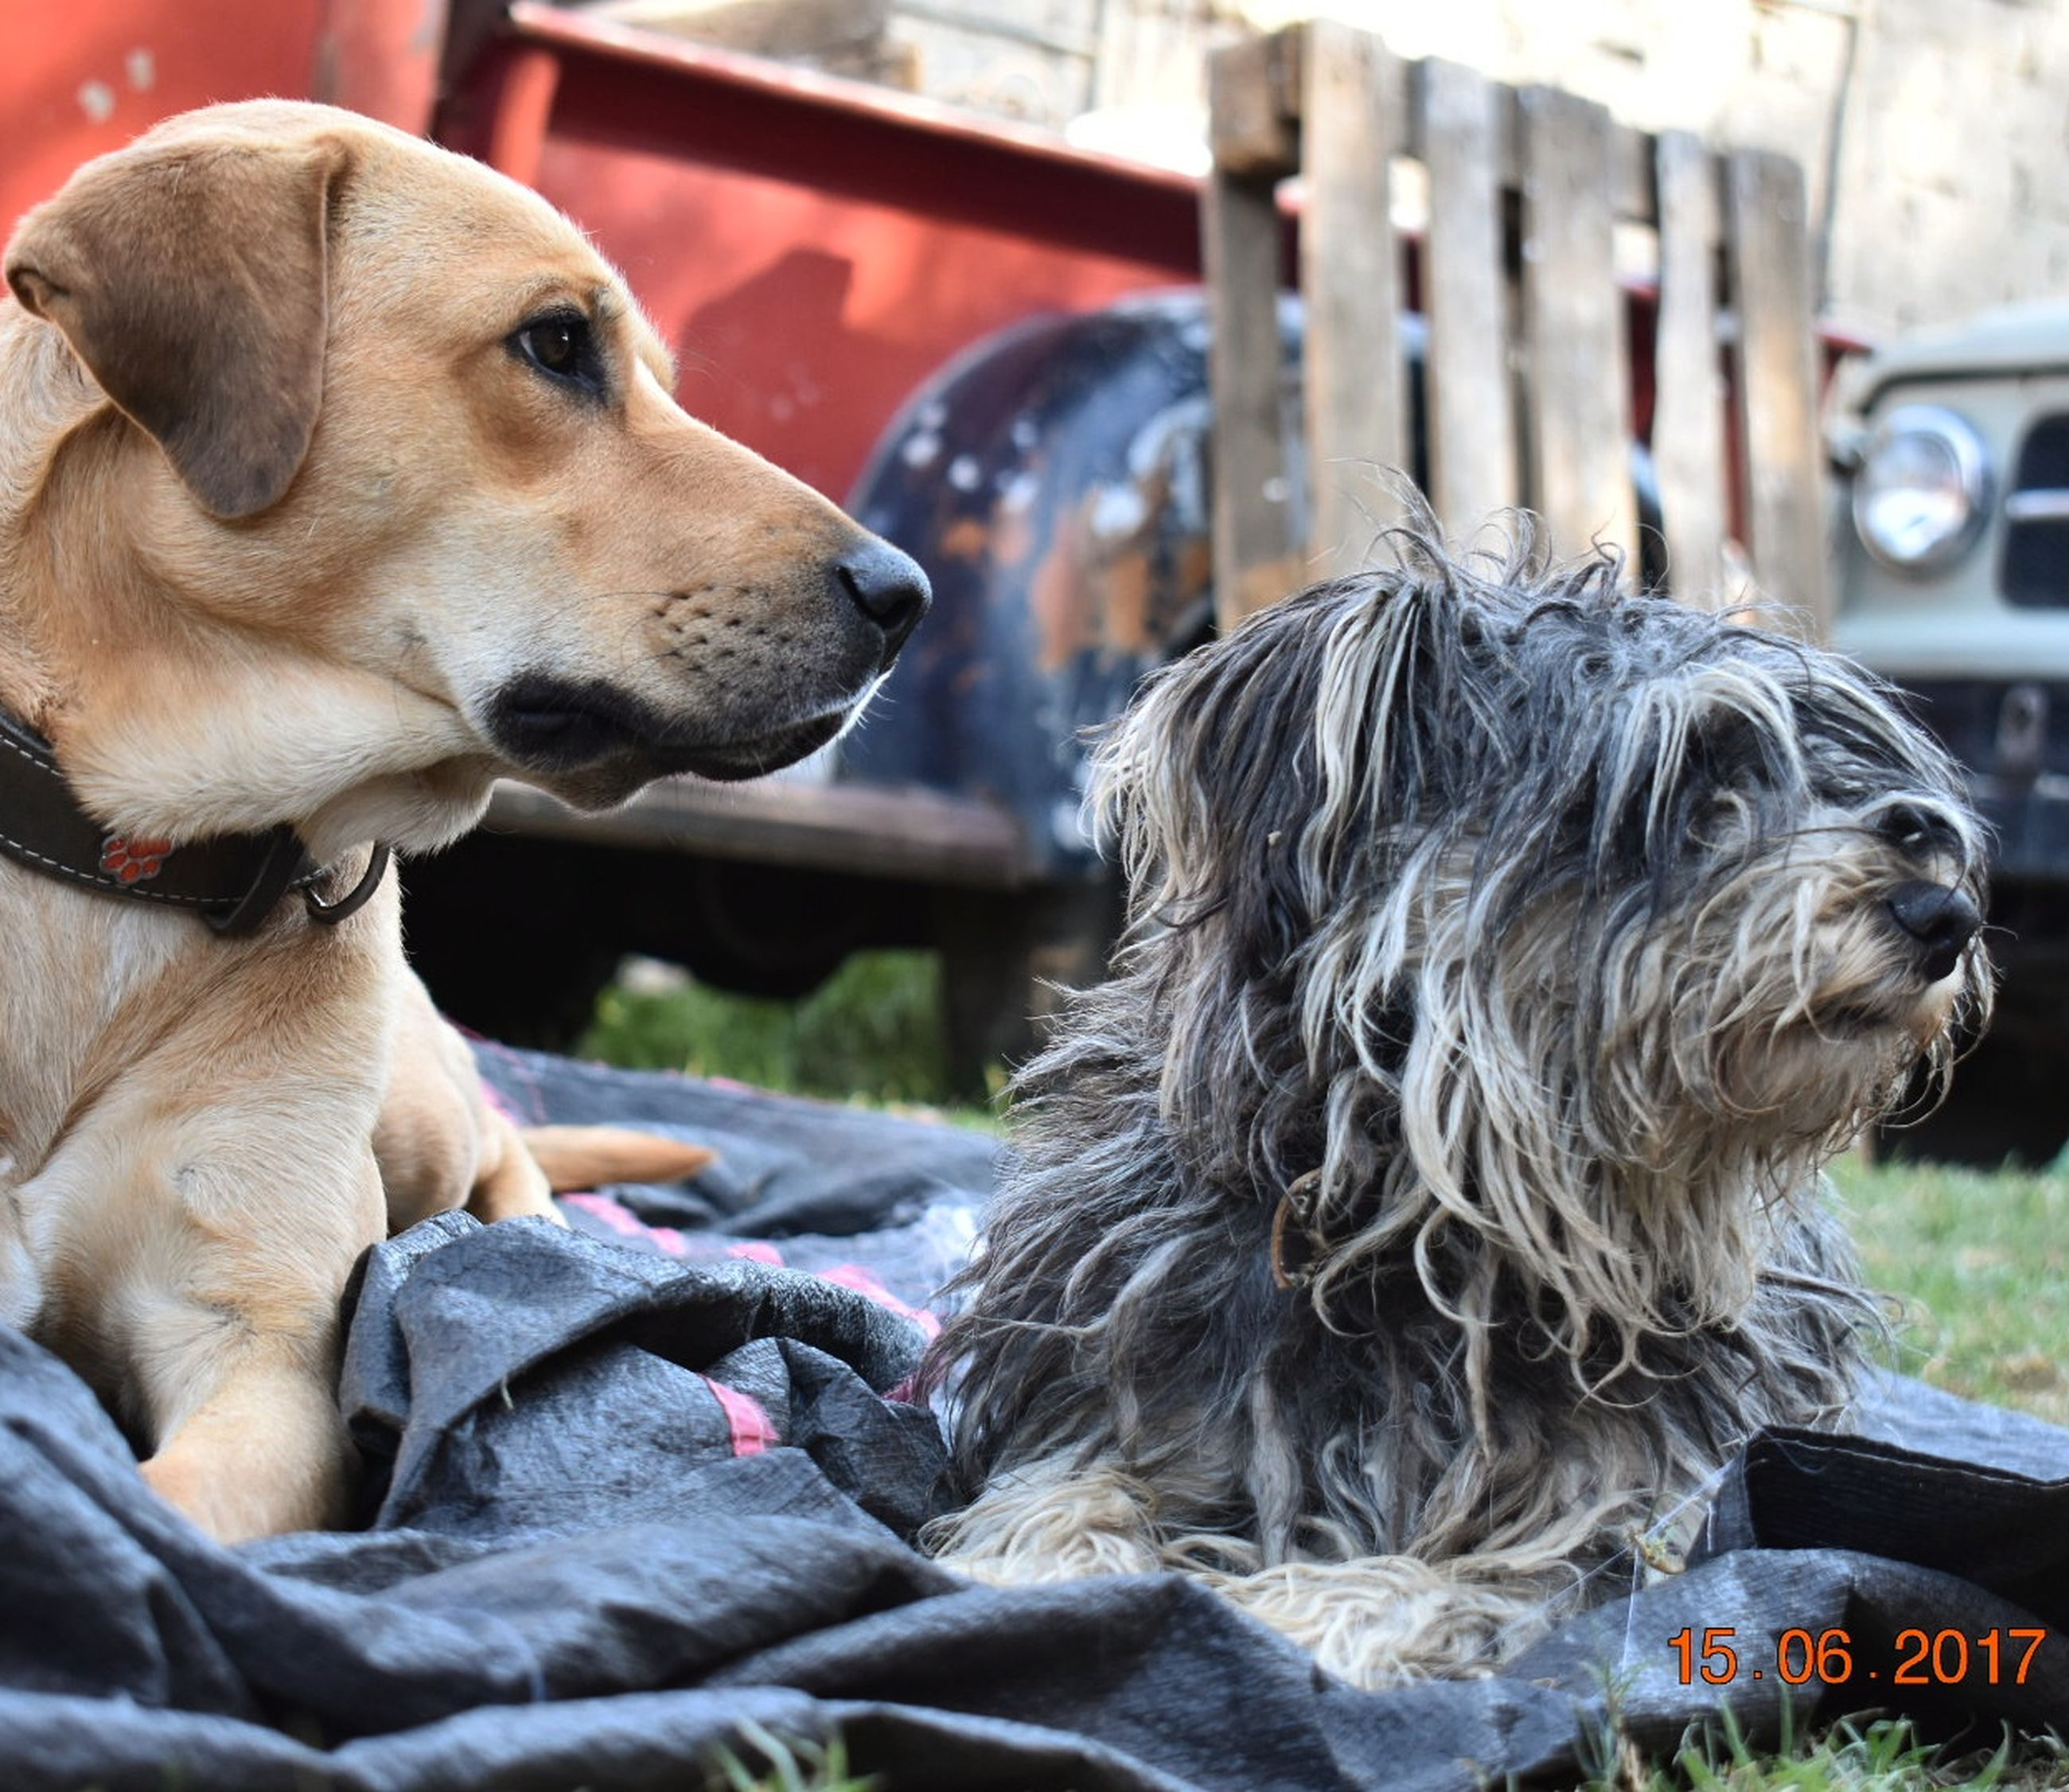 dog, pets, domestic animals, animal themes, mammal, one animal, day, close-up, sitting, no people, outdoors